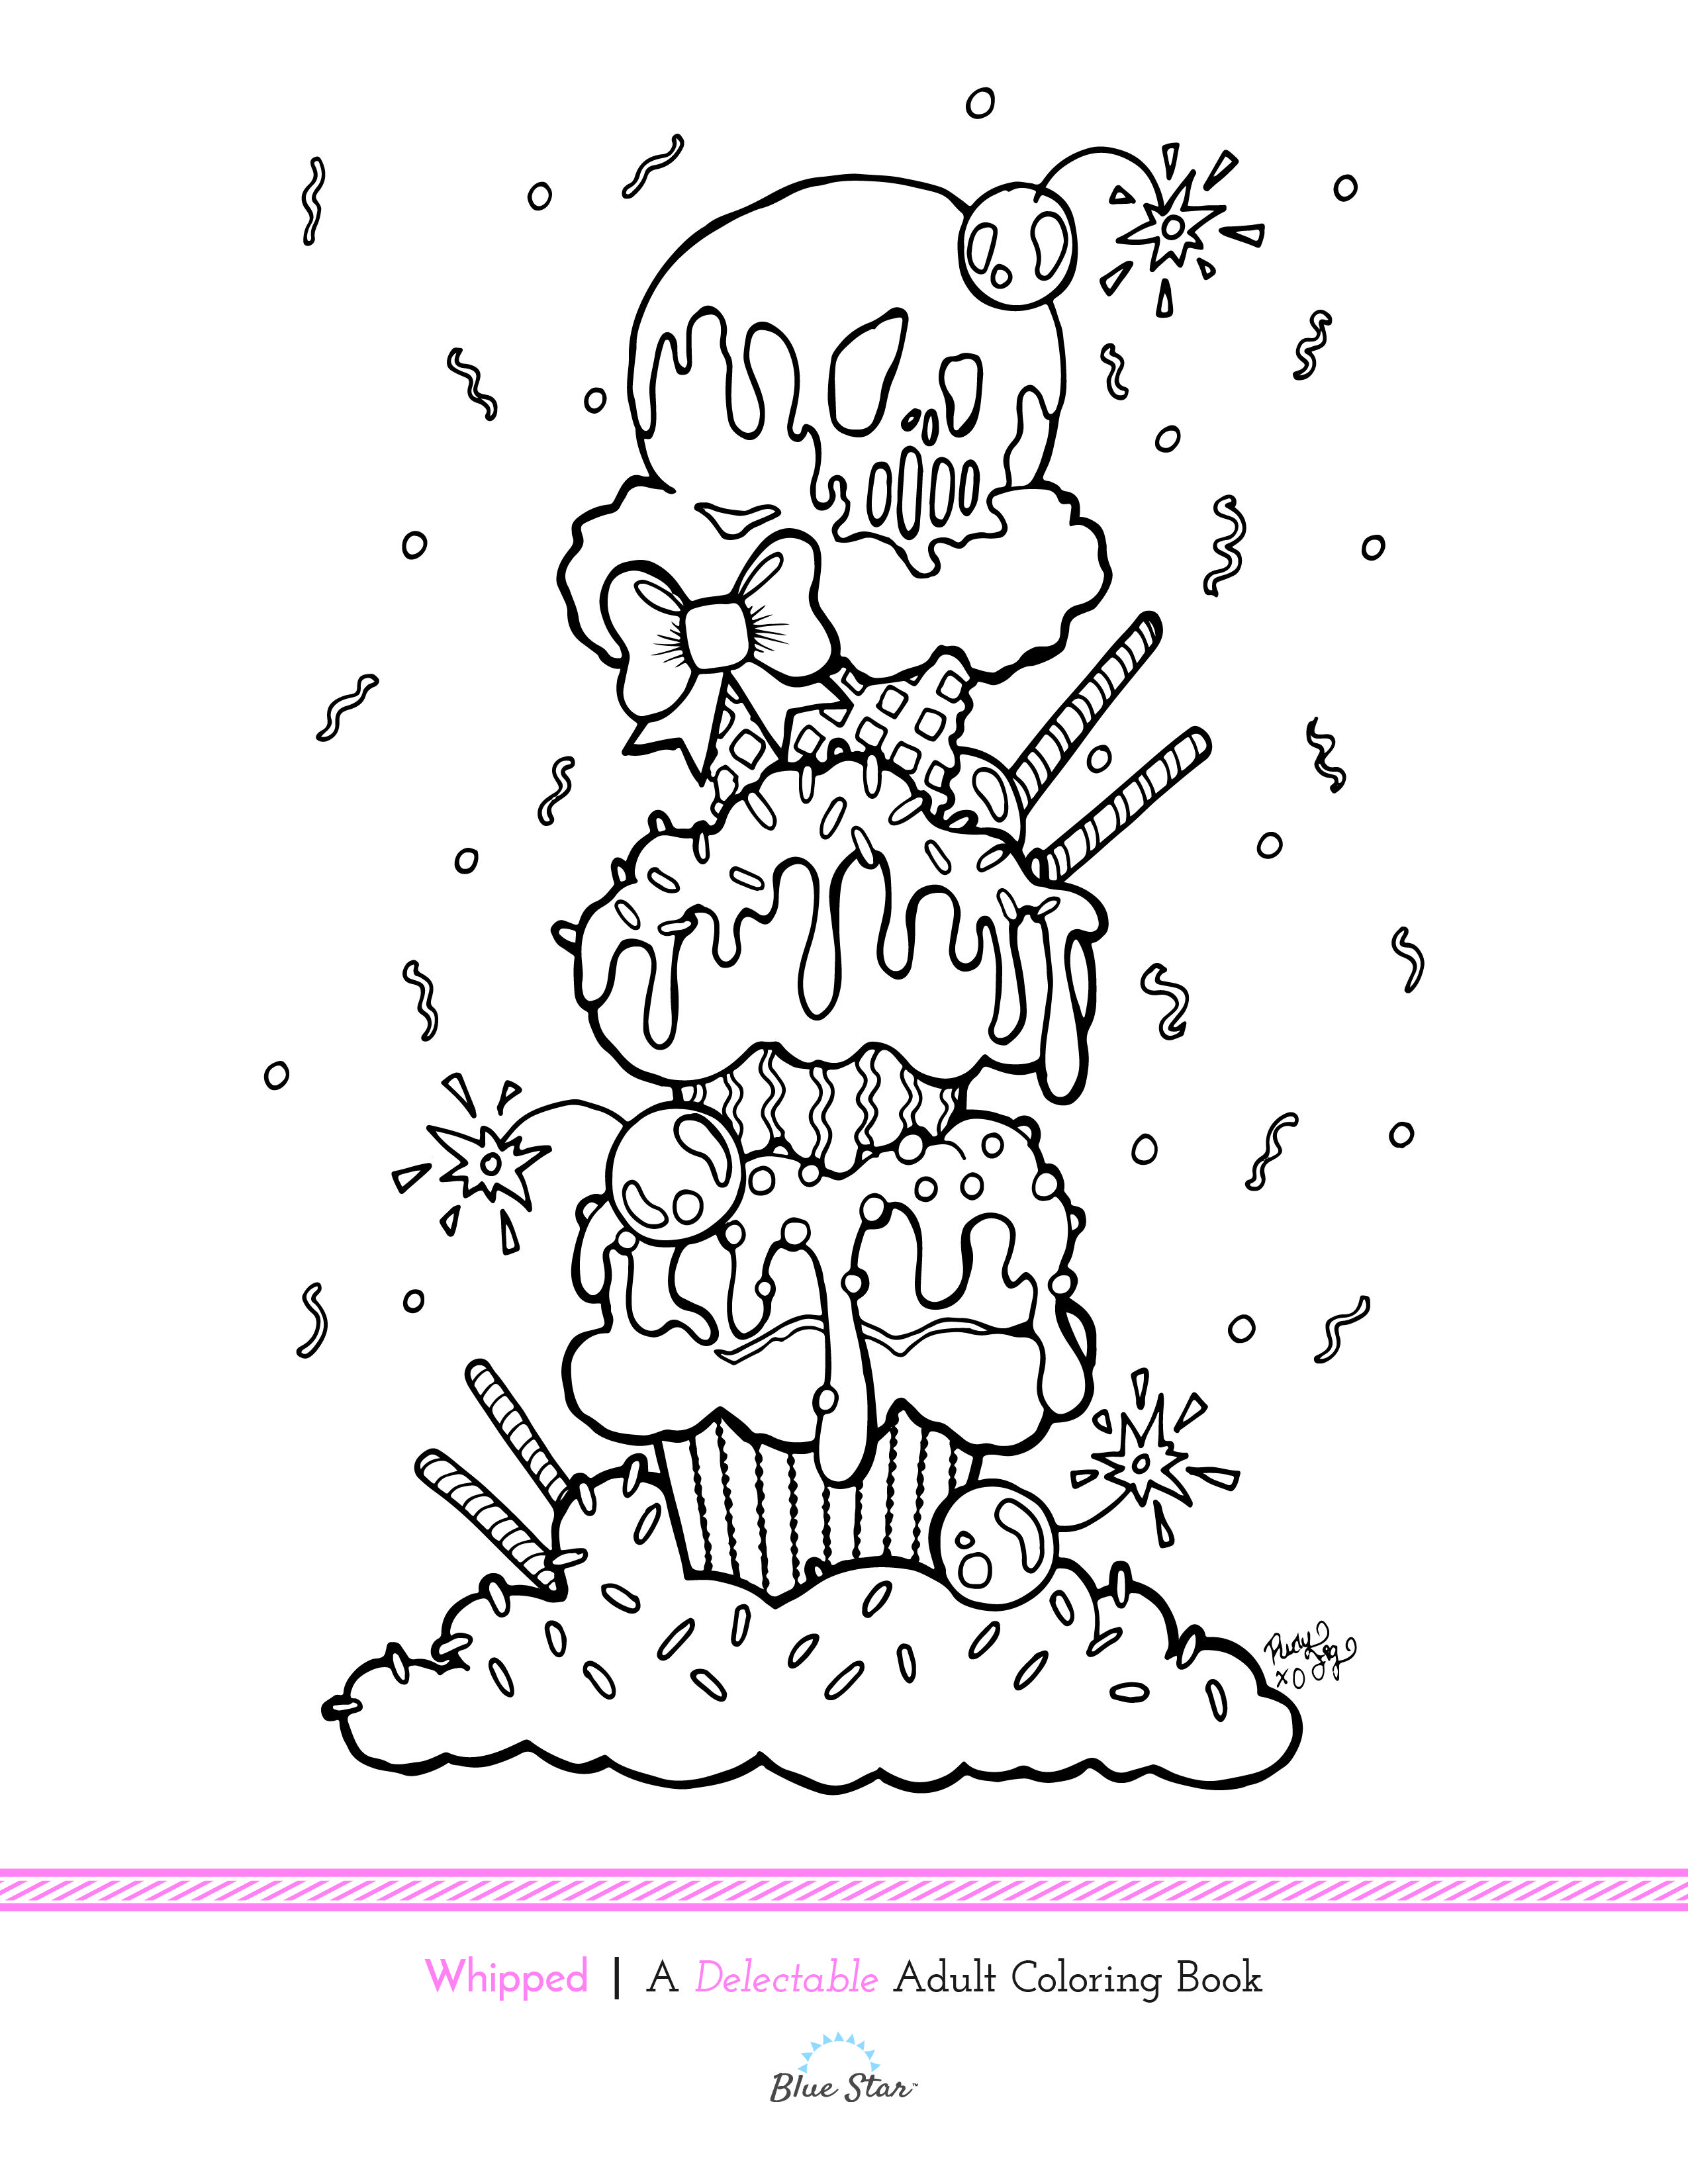 Free Coloring Page from Rudy Fig's new book being released